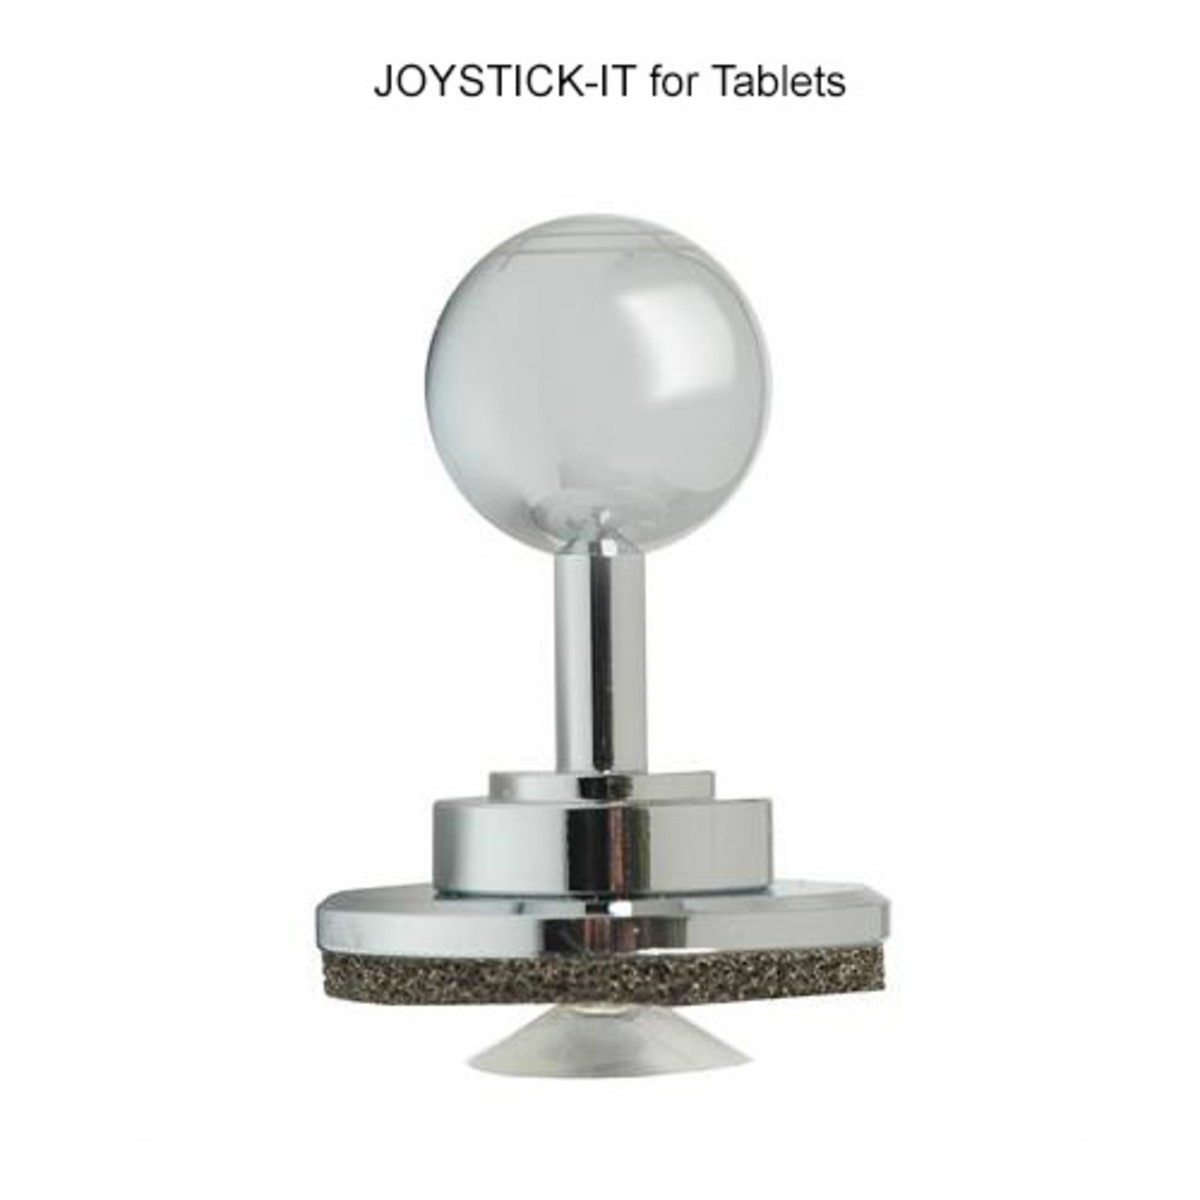 JoyStick-It Review: Retro Controls for Mobile Gaming